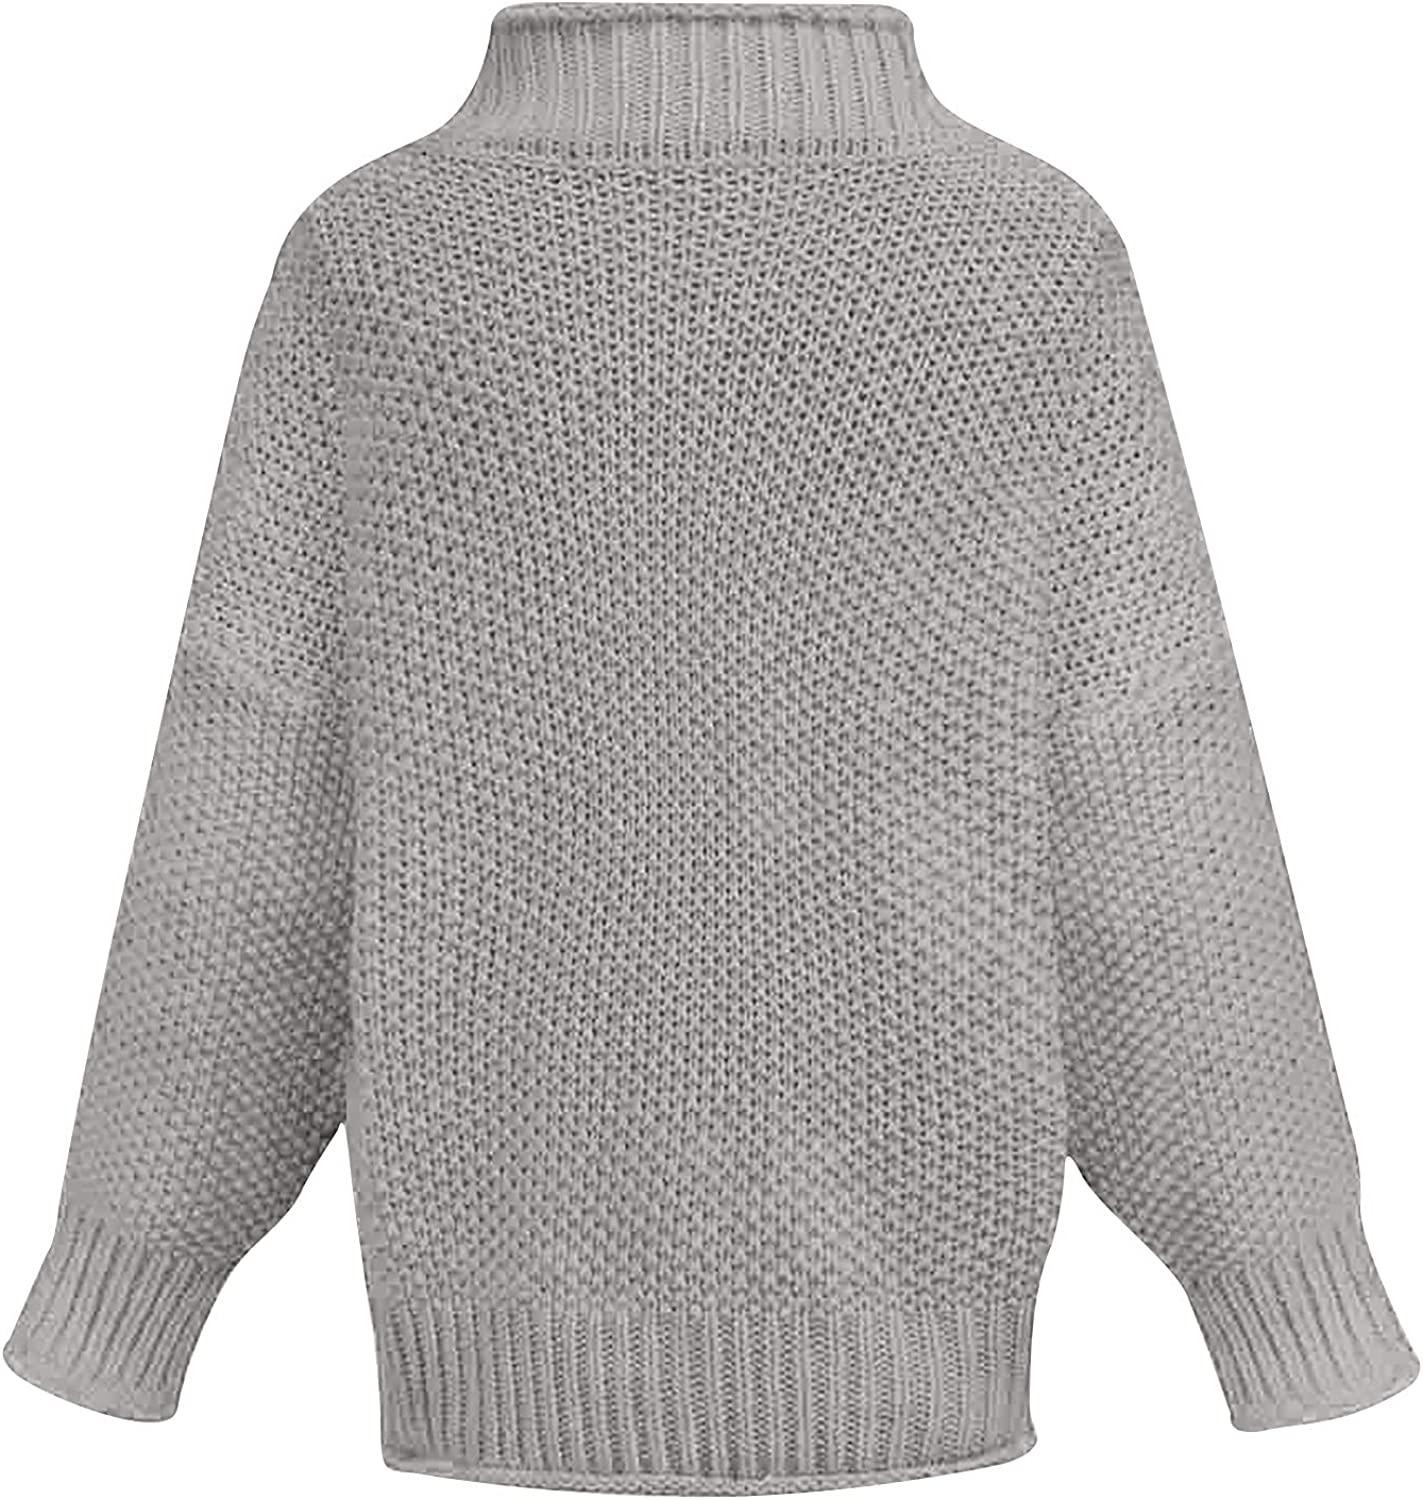 5665 Womens Chunky Knitted Mock Neck Sweater, Long Sleeve Fashion Warm Blouse Shirts Casual Sweatshirts Tunic Tops Pullover